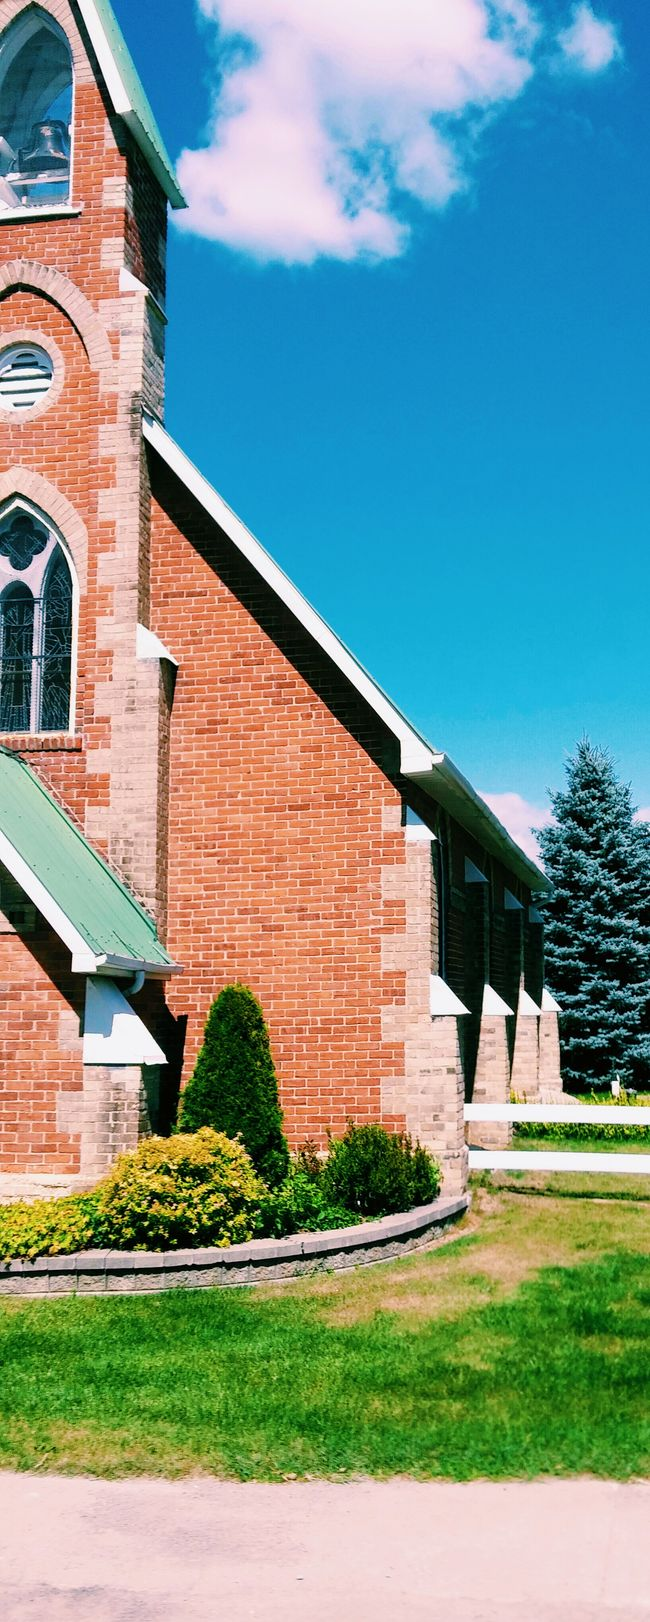 Even through severe persecution and death, God, let us love our enemies and pray for those who seek our harm. May we find peace in Your love, and comfort in You forever. Amen. Anglican Church Stjohns Midhurst Ontario Pray Prayer God Christianity Amen